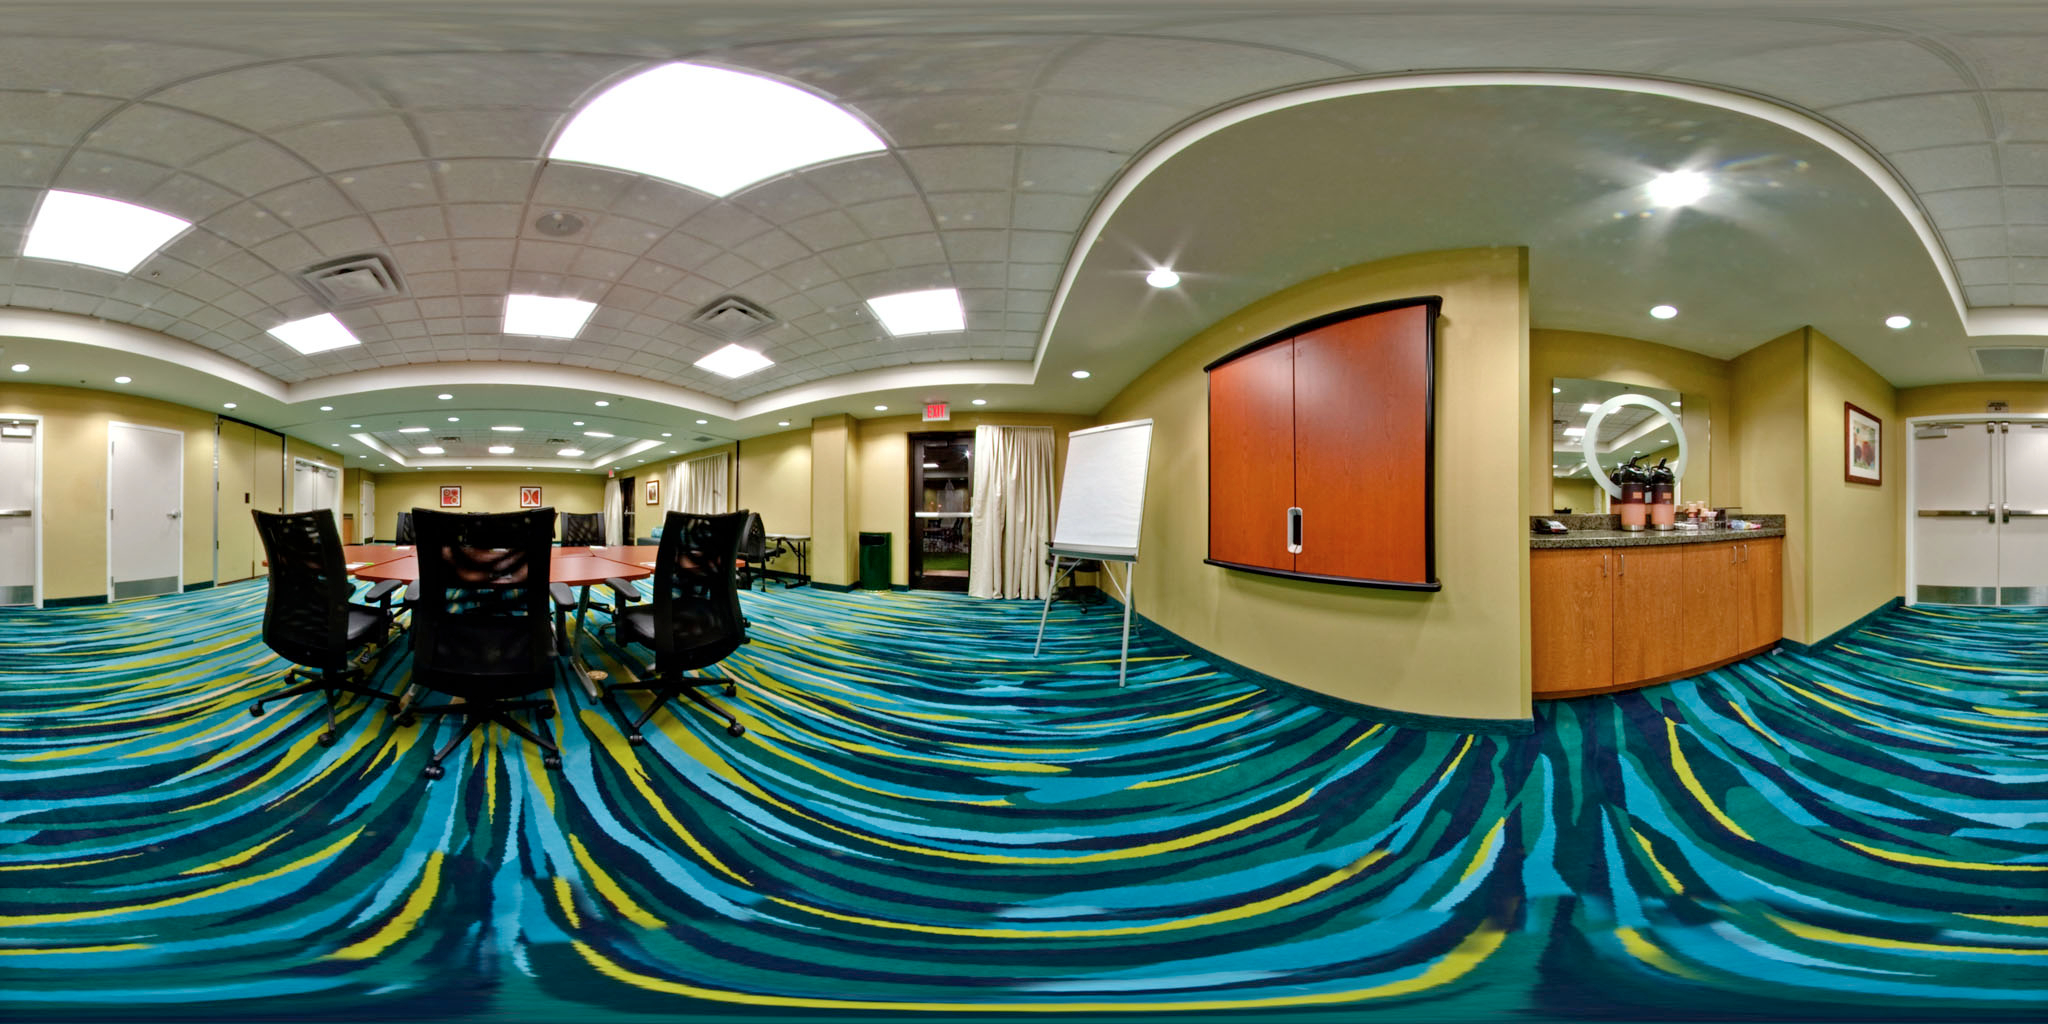 SpringHill Suites by Marriott Baton Rouge North/Airport image 6